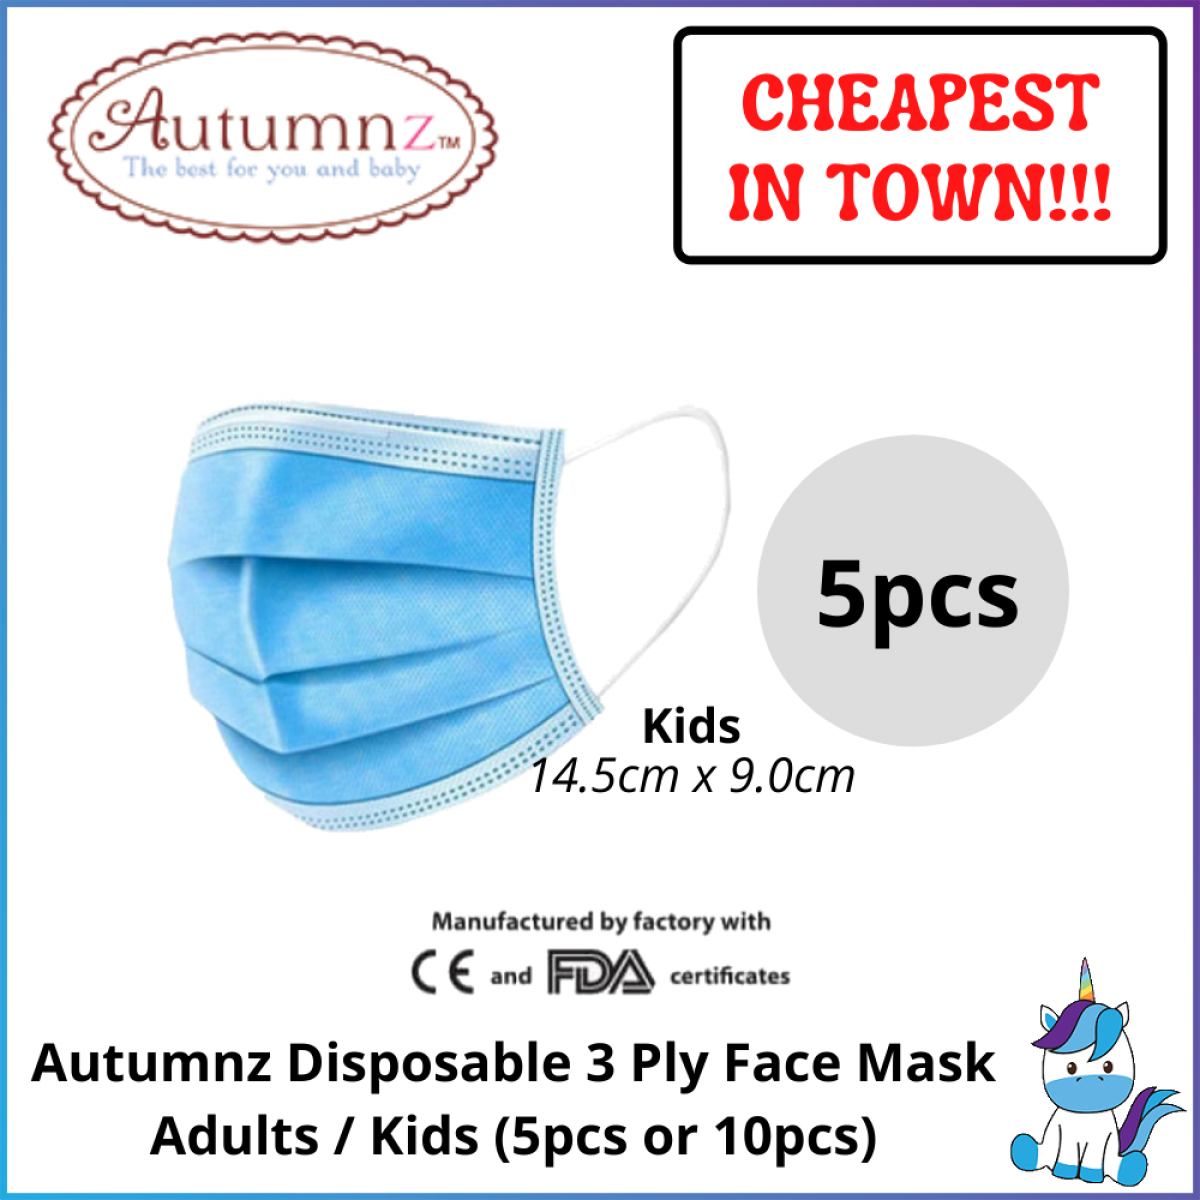 Autumnz Disposable 3ply Adults / Kids Face Mask 5pcs / 10pcs - Earloop - Suitable for Adults or Kids